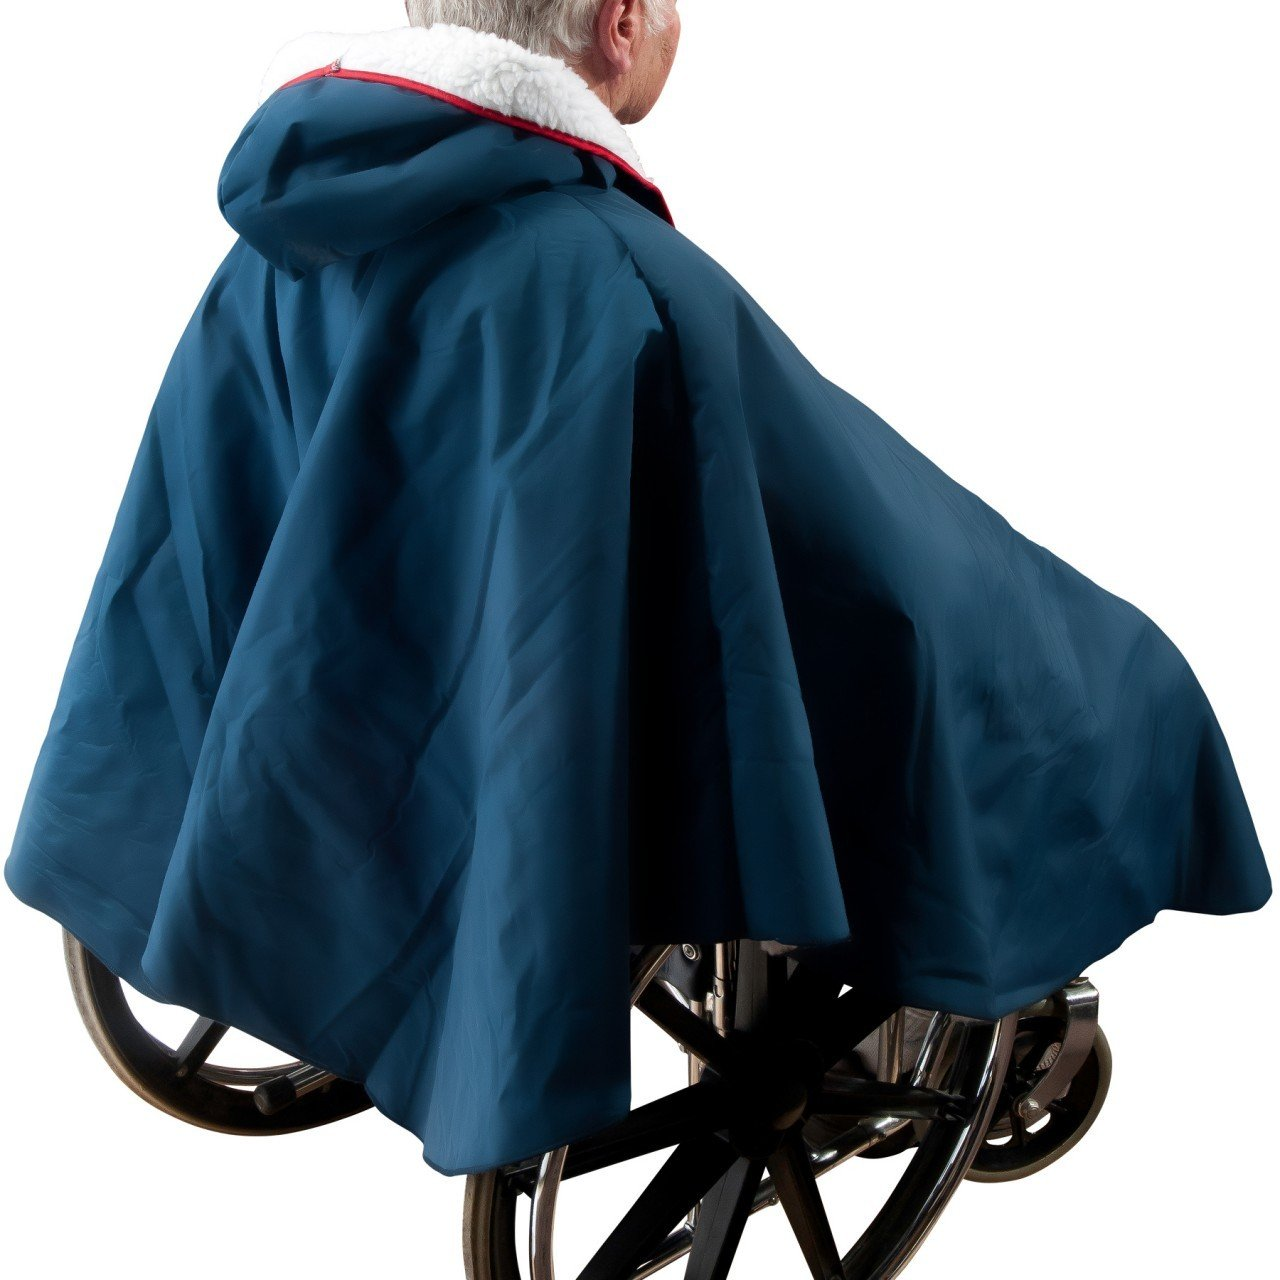 Warm Wheelchair Poncho with Sherpa-Like Lining (Navy Blue) by Unknown (Image #3)